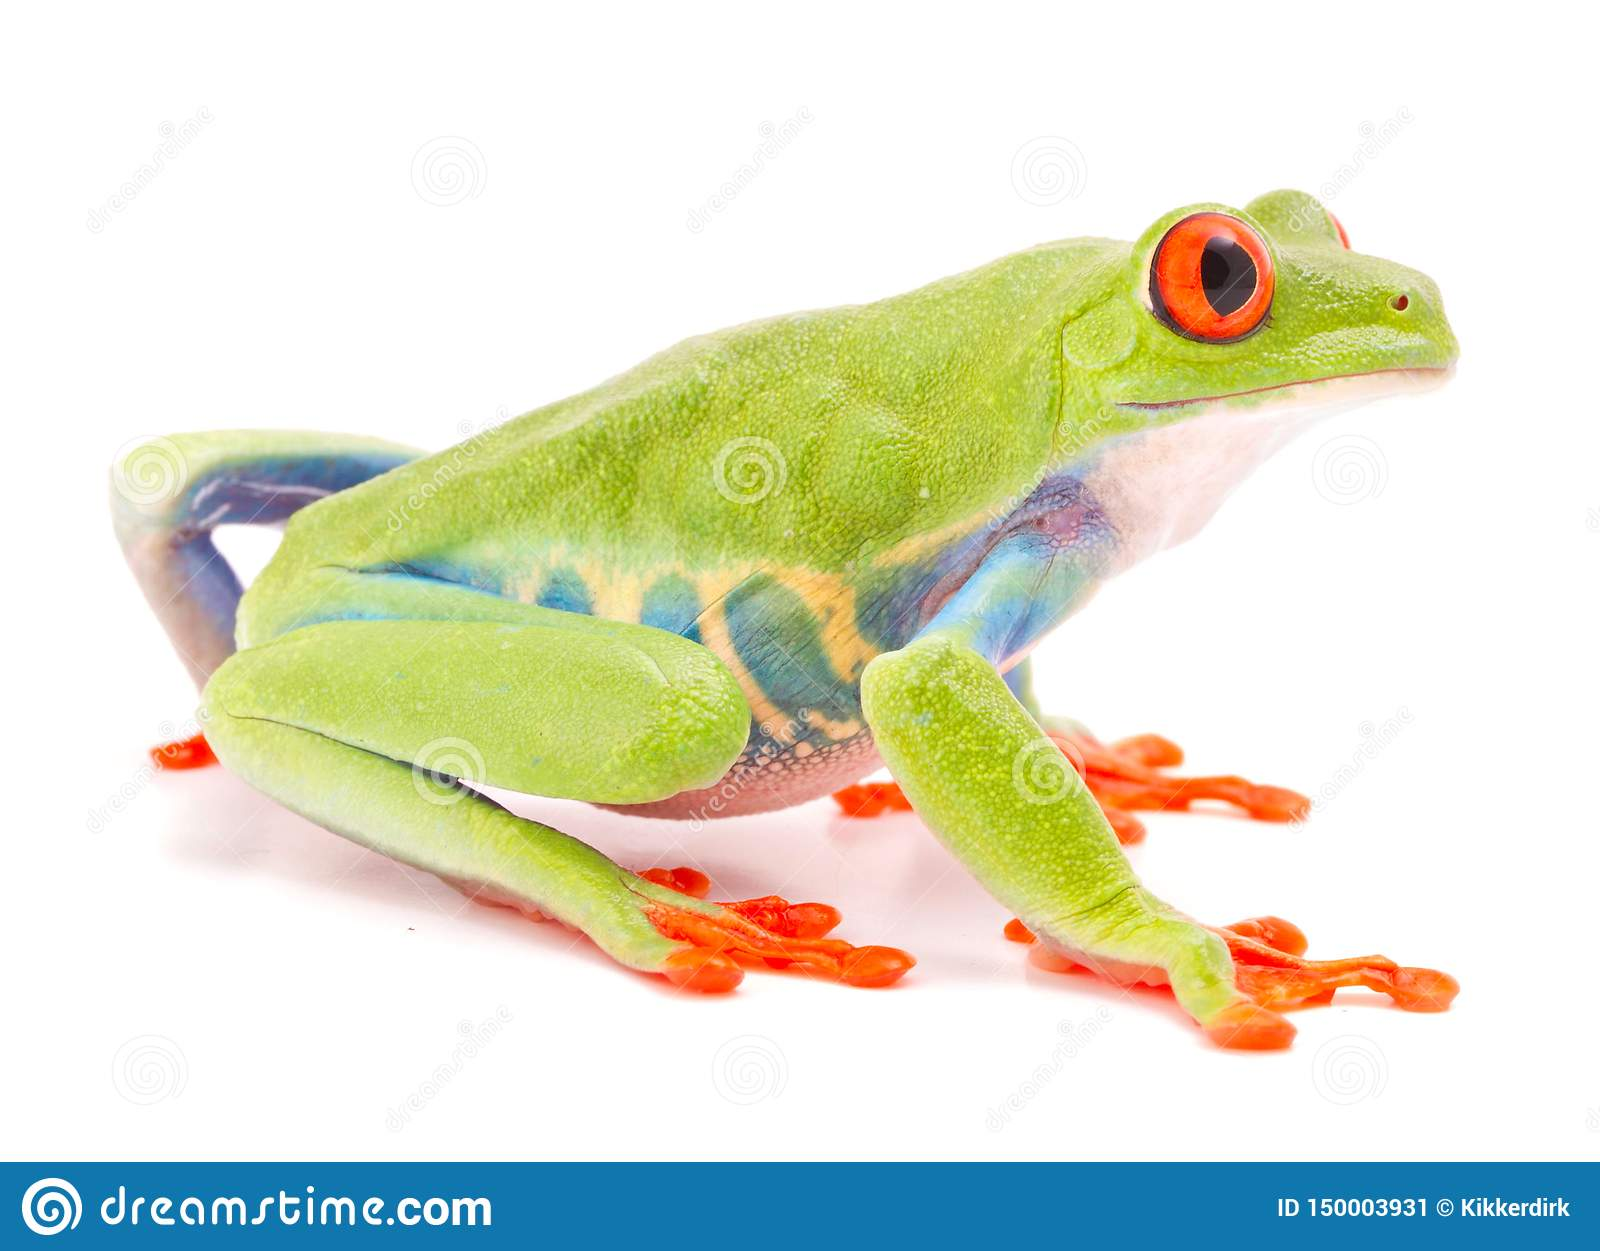 Red eyed monkey tree frog, Agalychnis callydrias